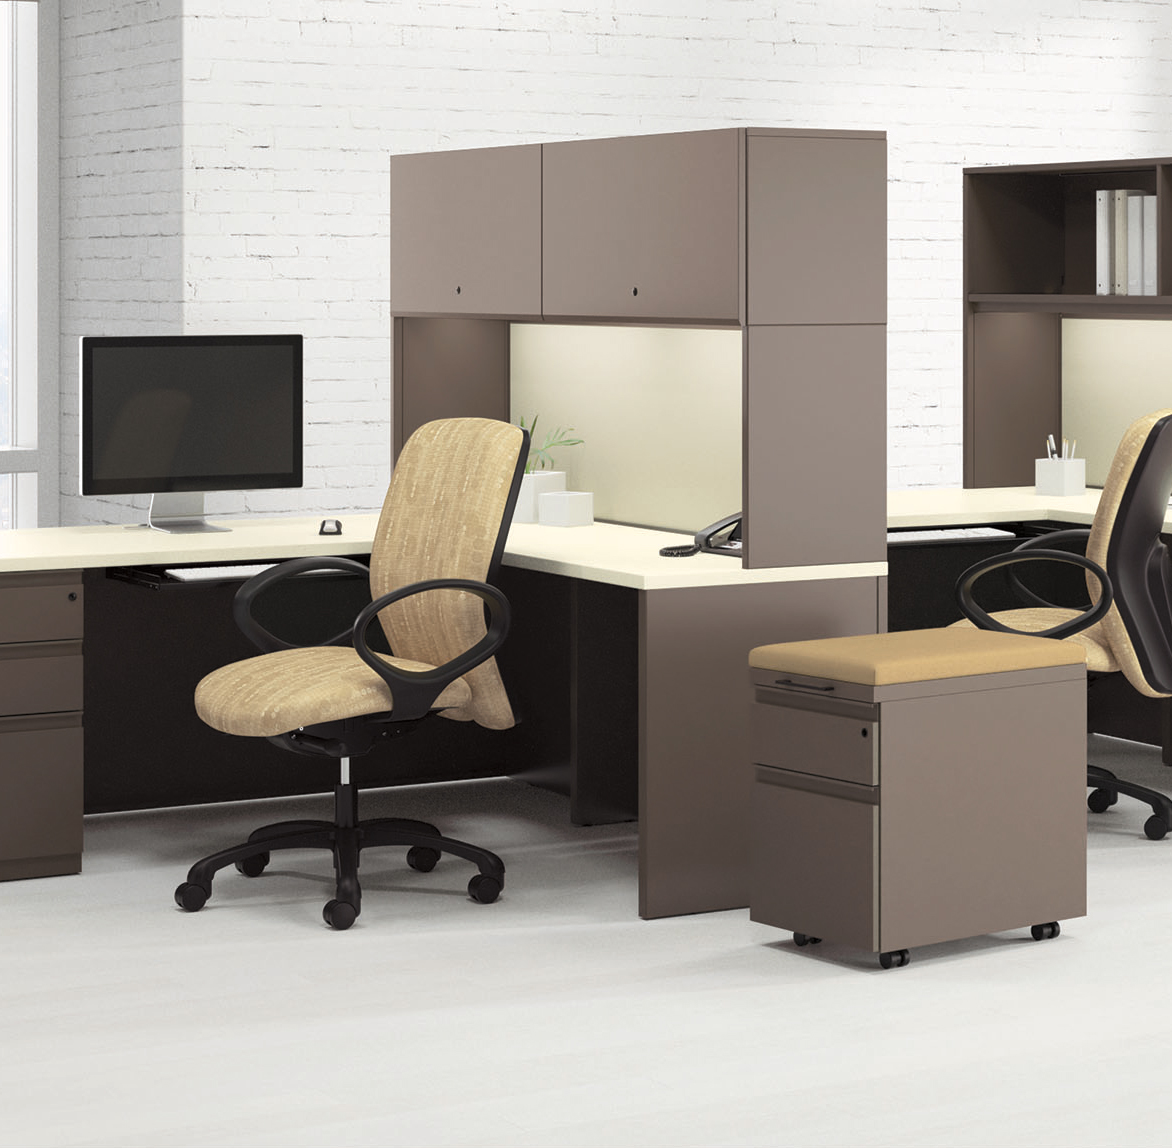 workstations-national-waveworks6